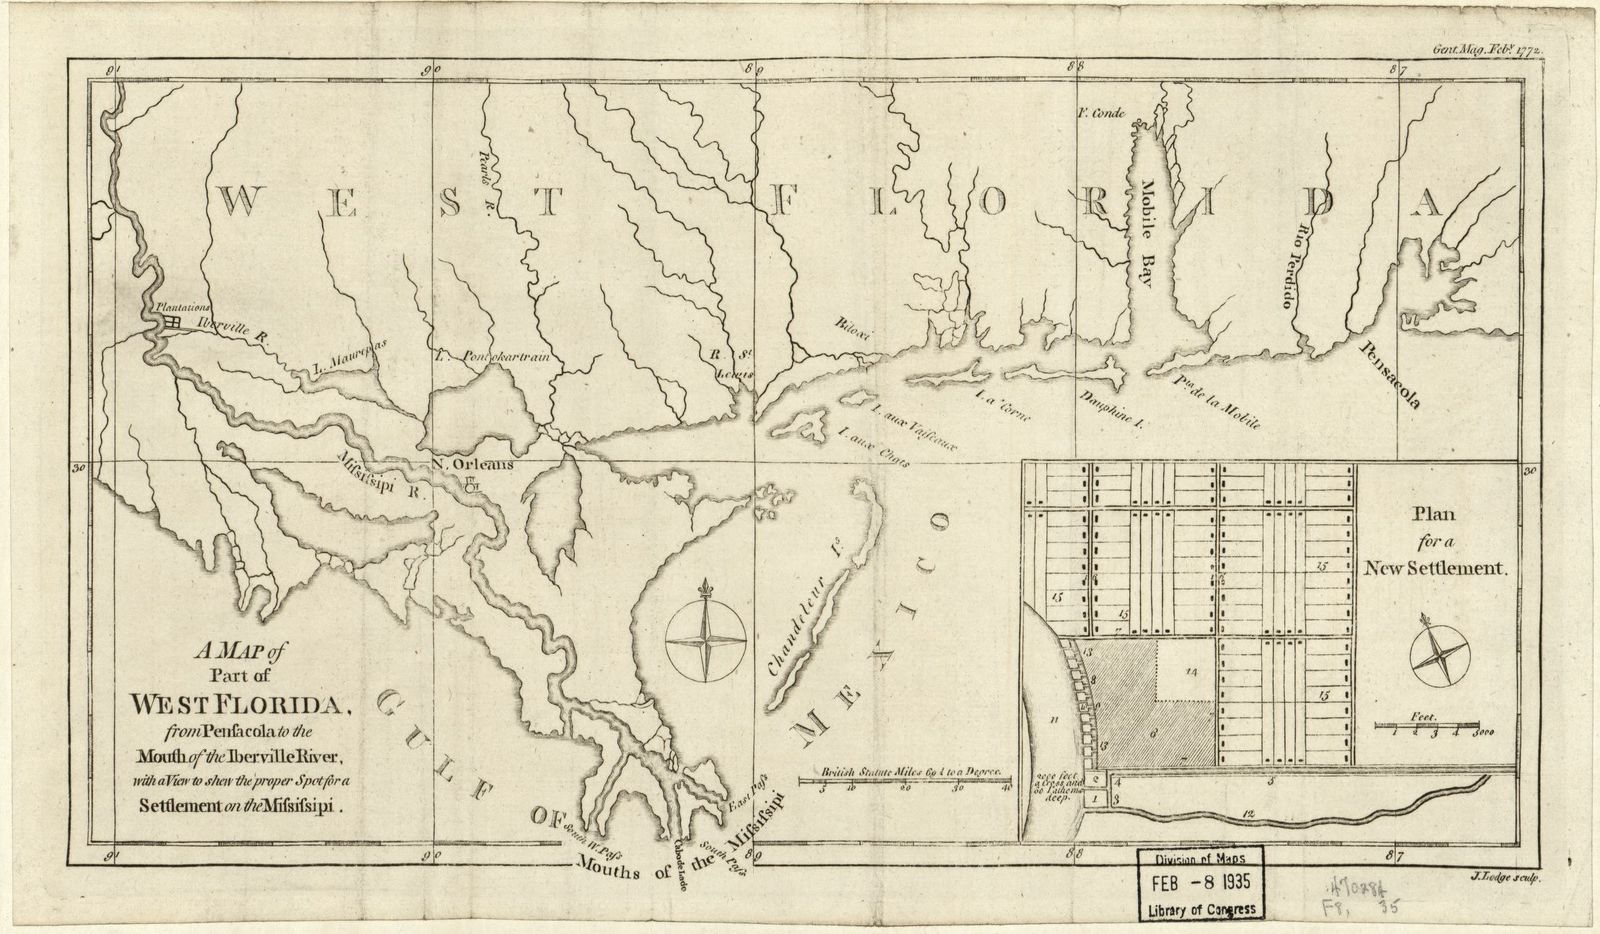 A map of part of West Florida : from Penfacola to the mouth of the Iberville River, with a view to shew the proper spot for a settlement on the Mifsifsipi /